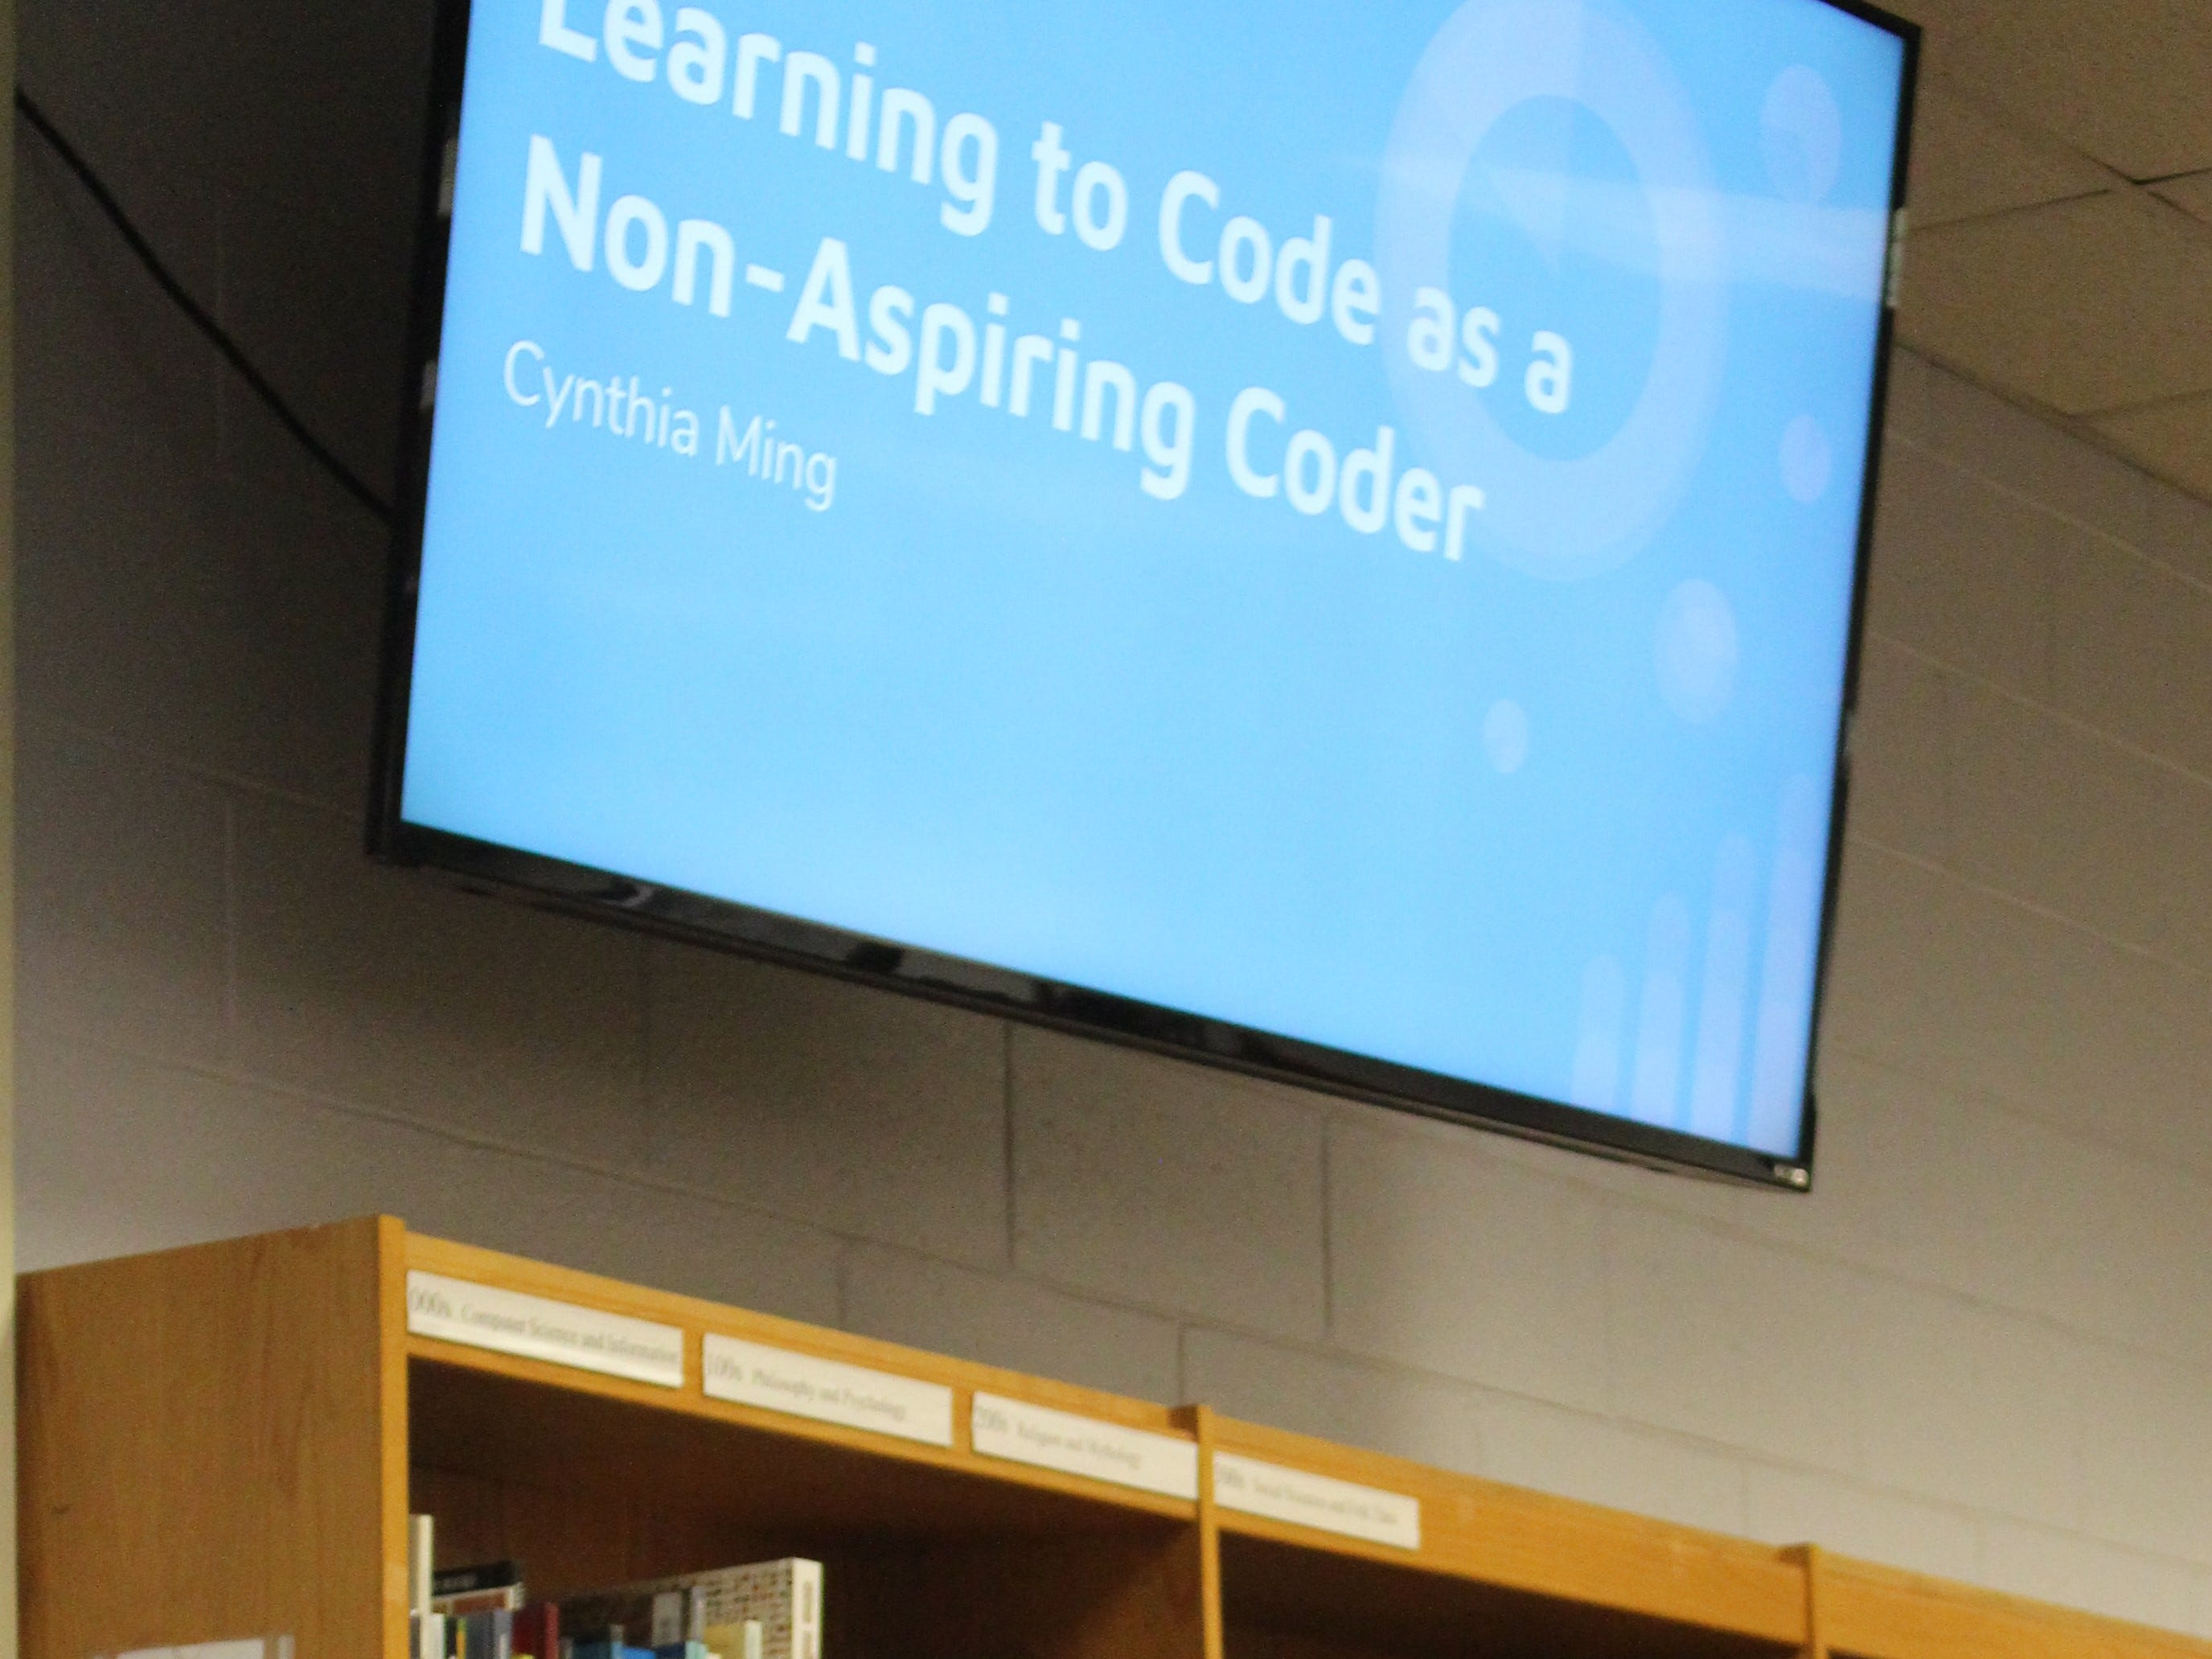 WMS student Cynthia Ming delivers her presentation on Learning to Code as a non-aspiring coder.